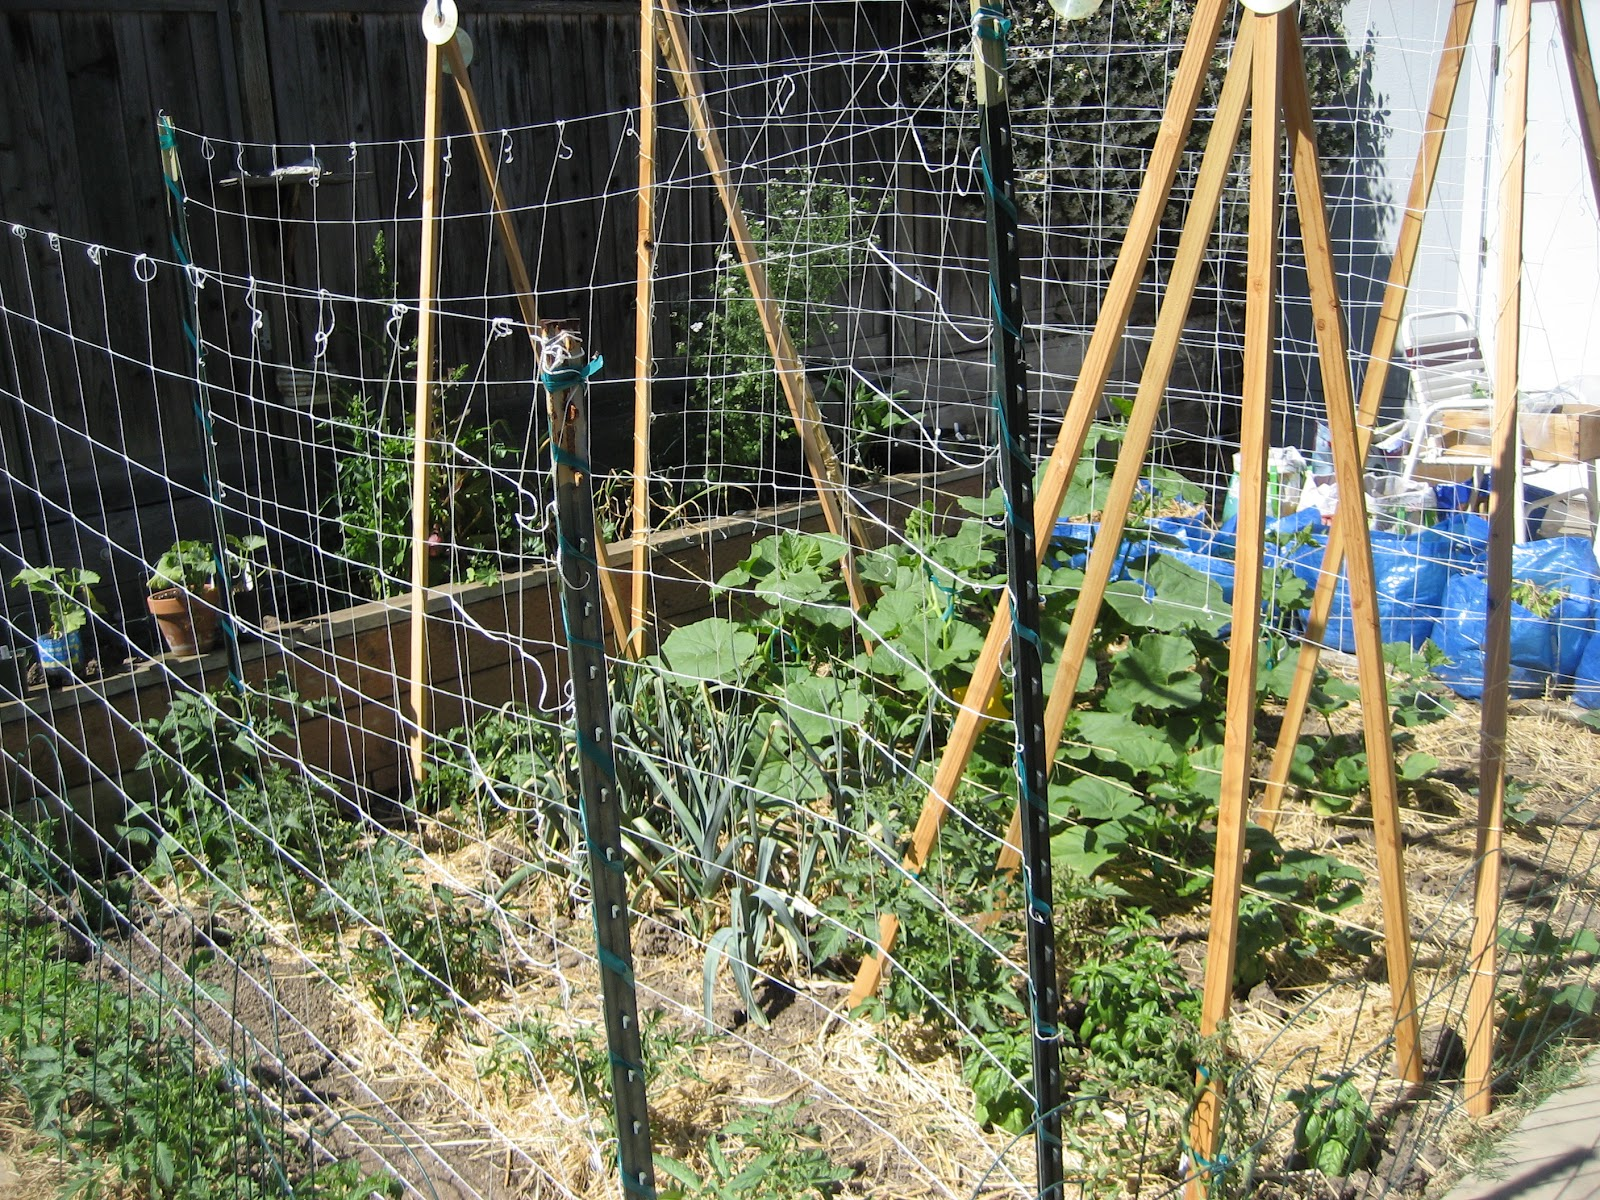 backyard farming growing winter squash vertically